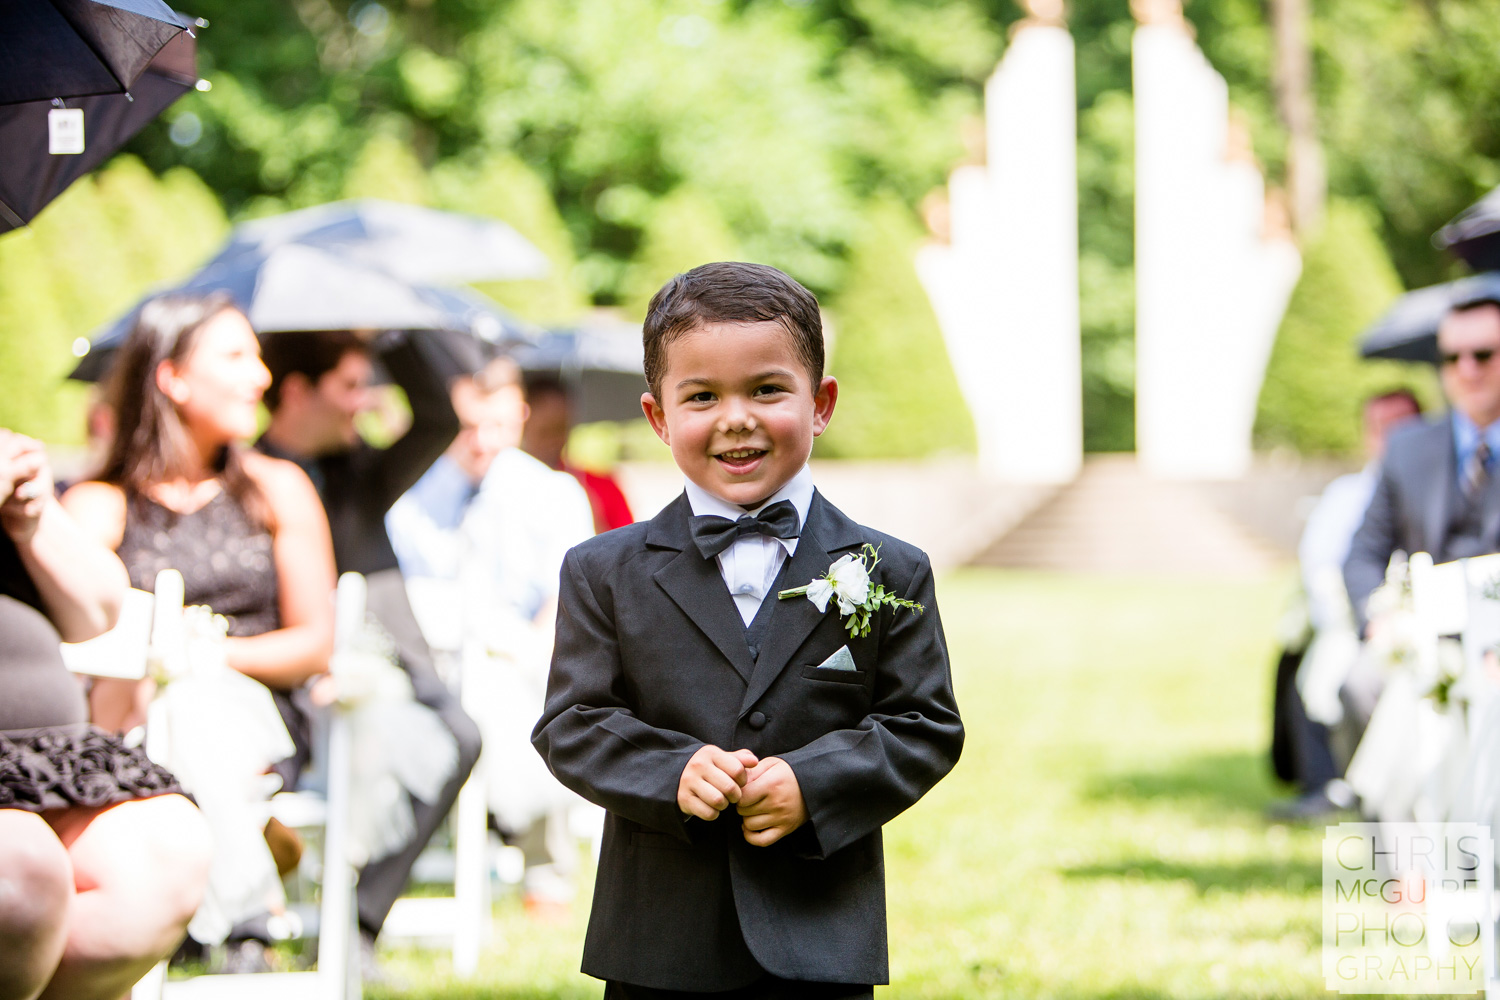 ring bearer at Sunken Garden Allerton wedding